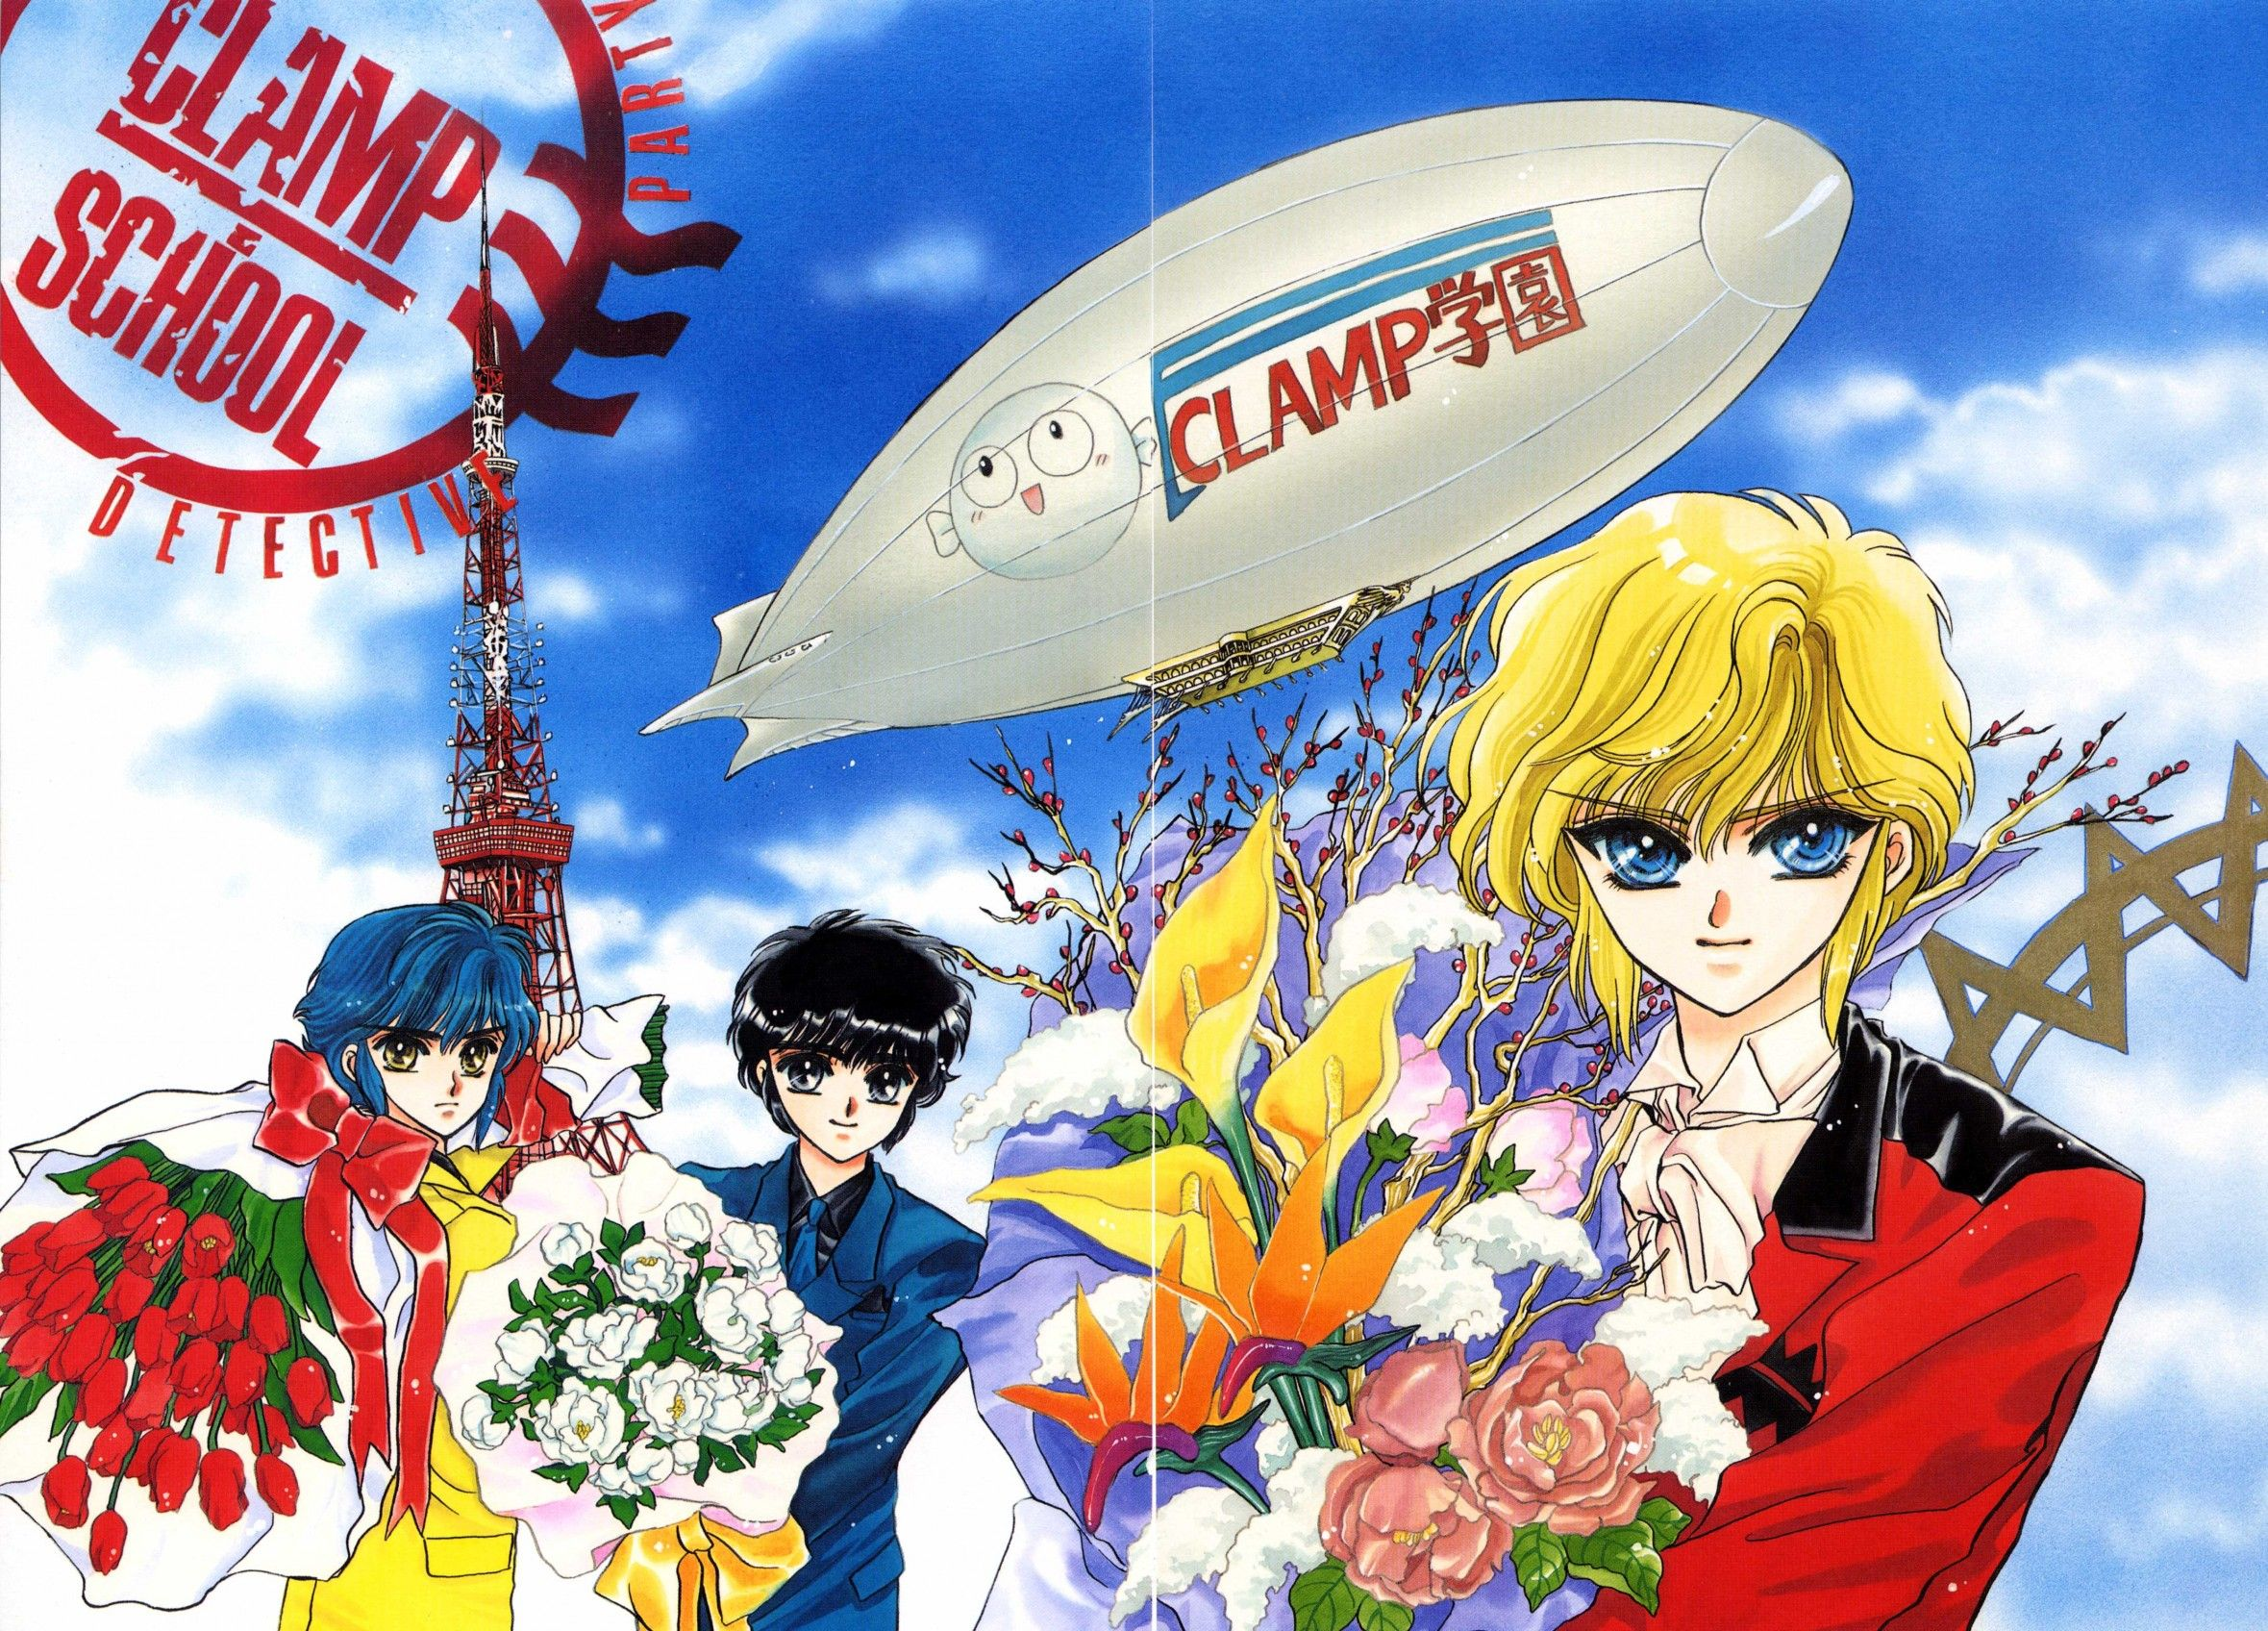 learn arabic transcripted anime clamp school detectives episode 8